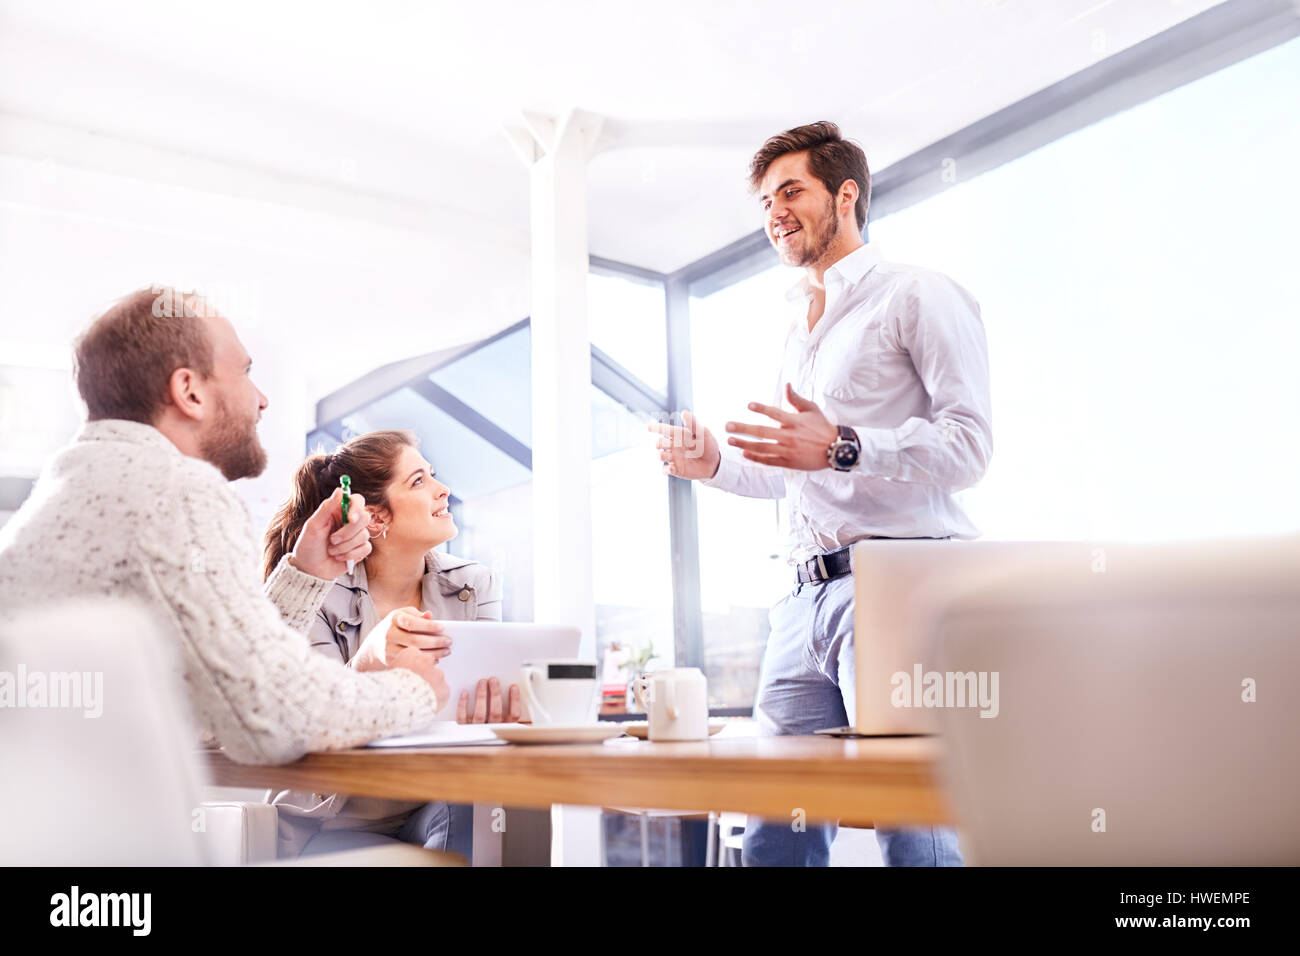 Young businessman making presentation to business team in office - Stock Image